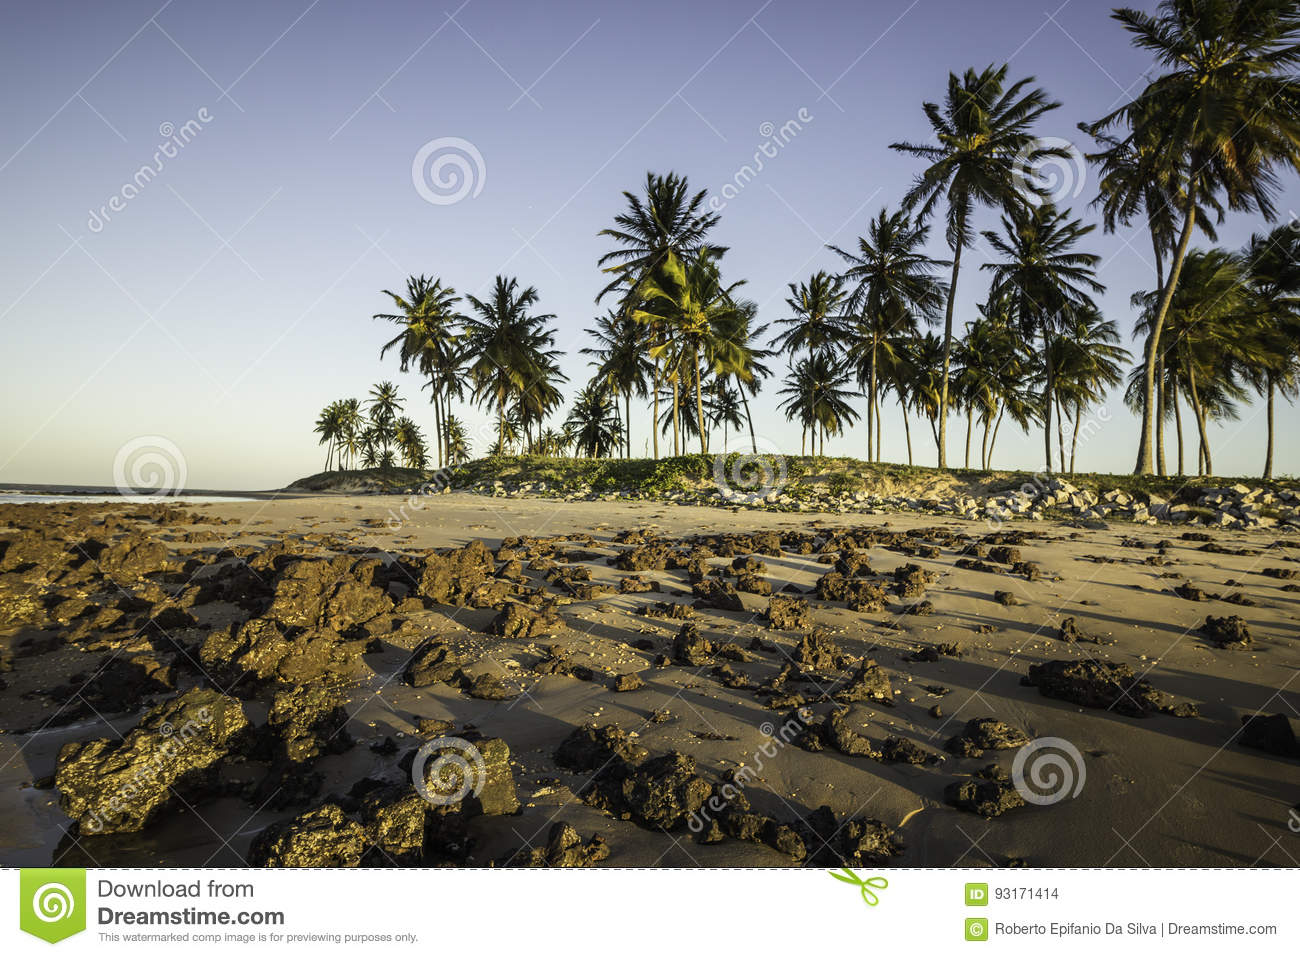 Coconuts on the beach at sunset - North coast of Potiguar